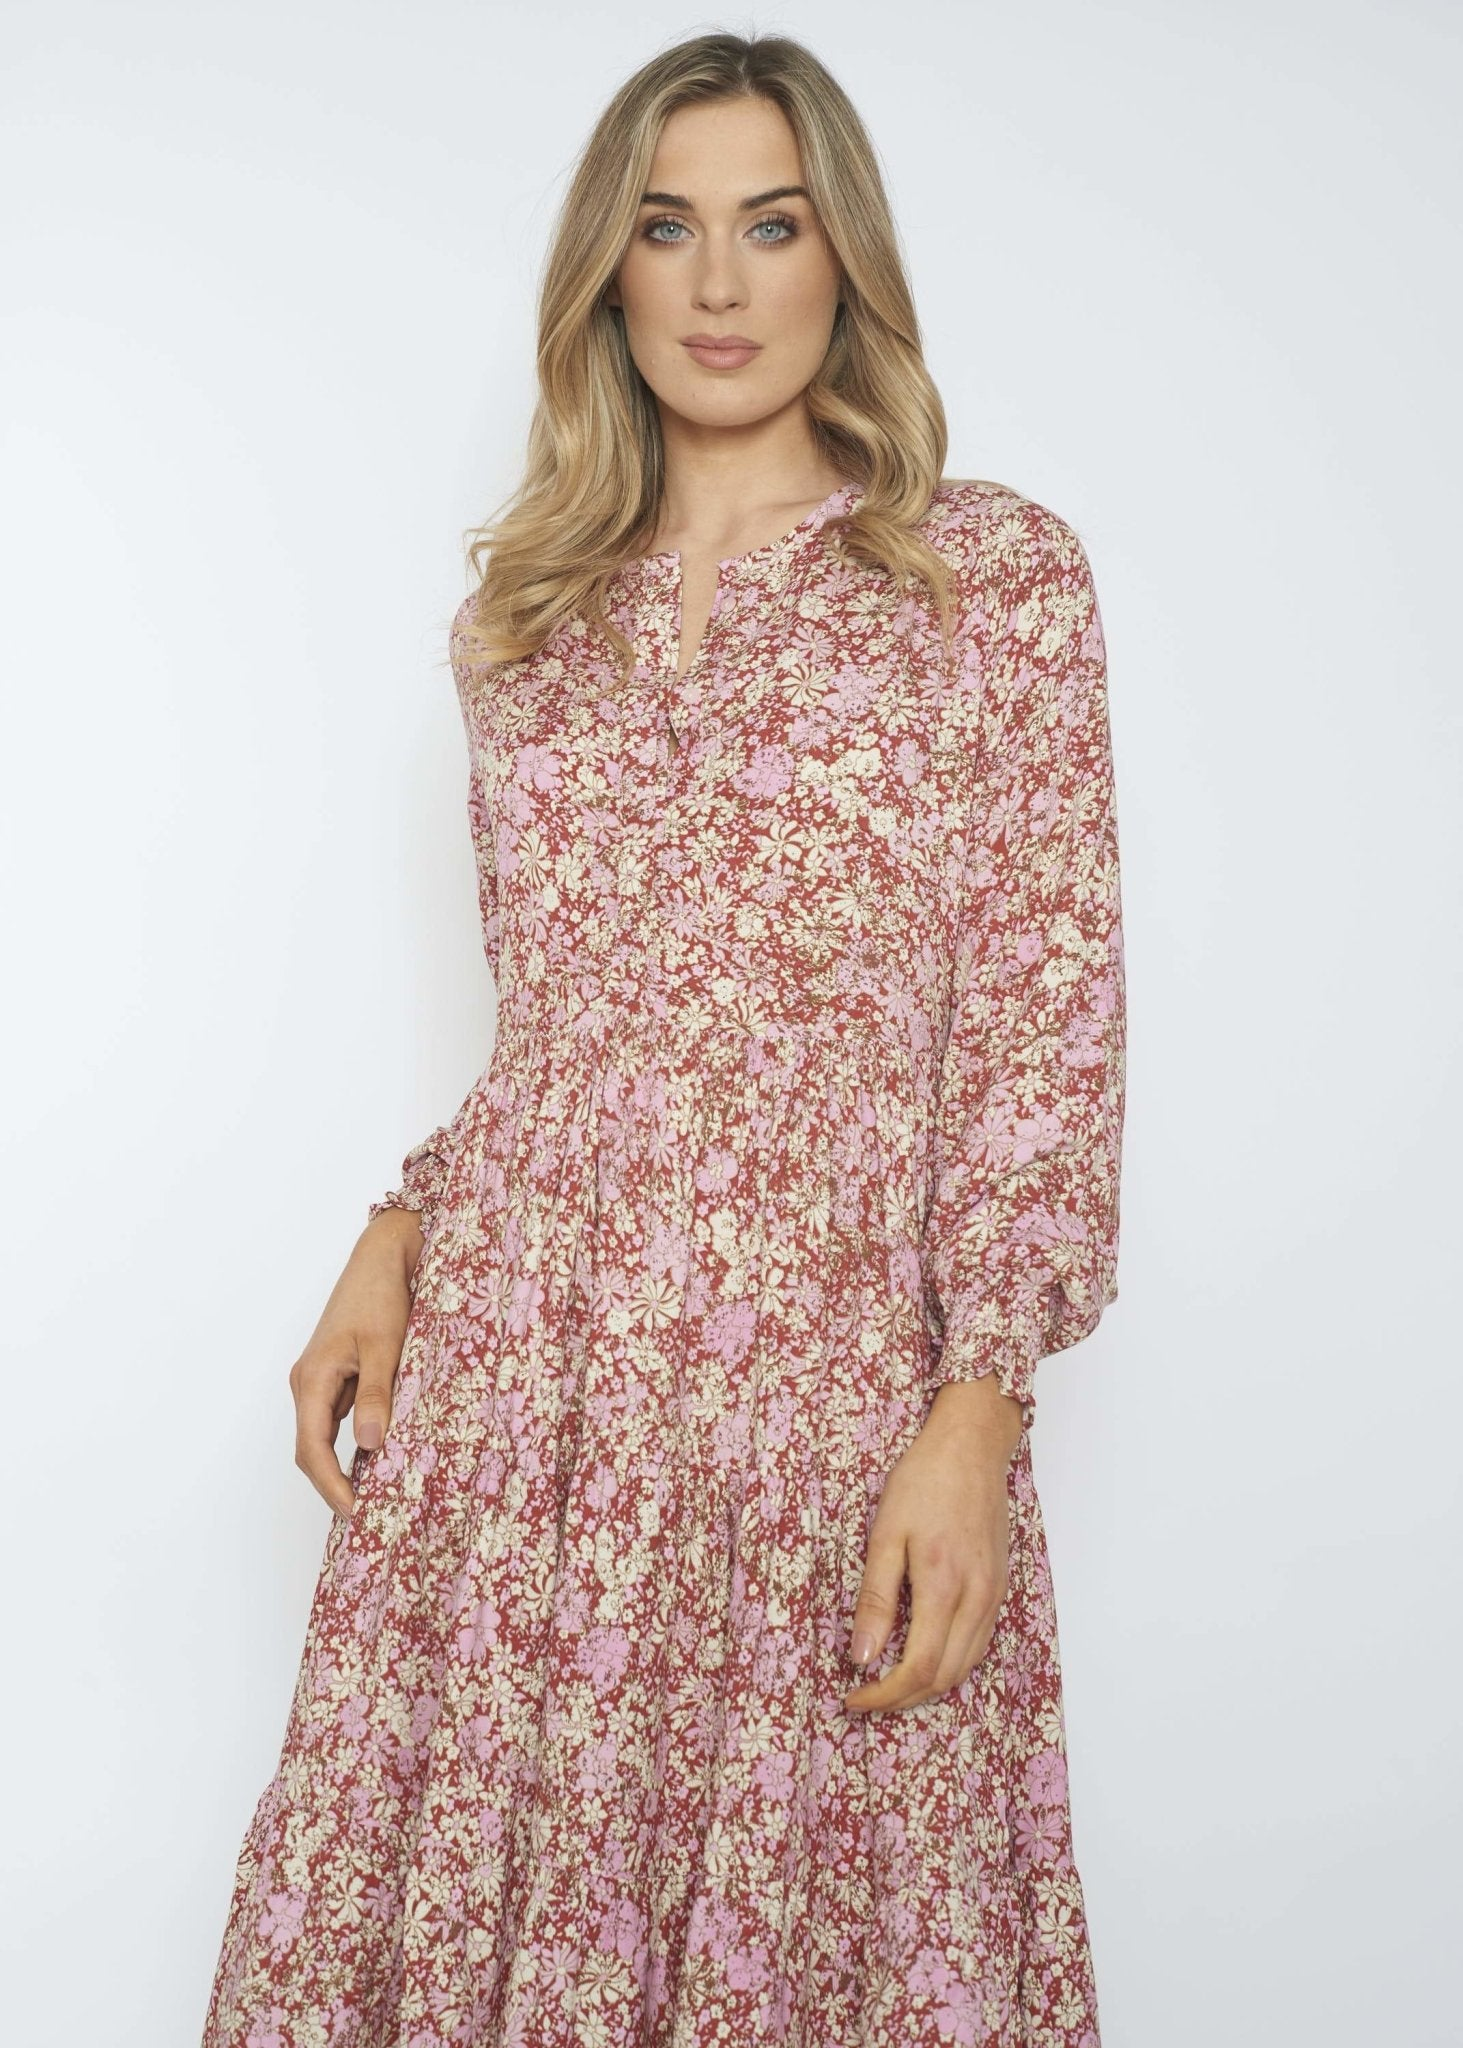 Casey Tiered Floral Dress In Red Mix - The Walk in Wardrobe